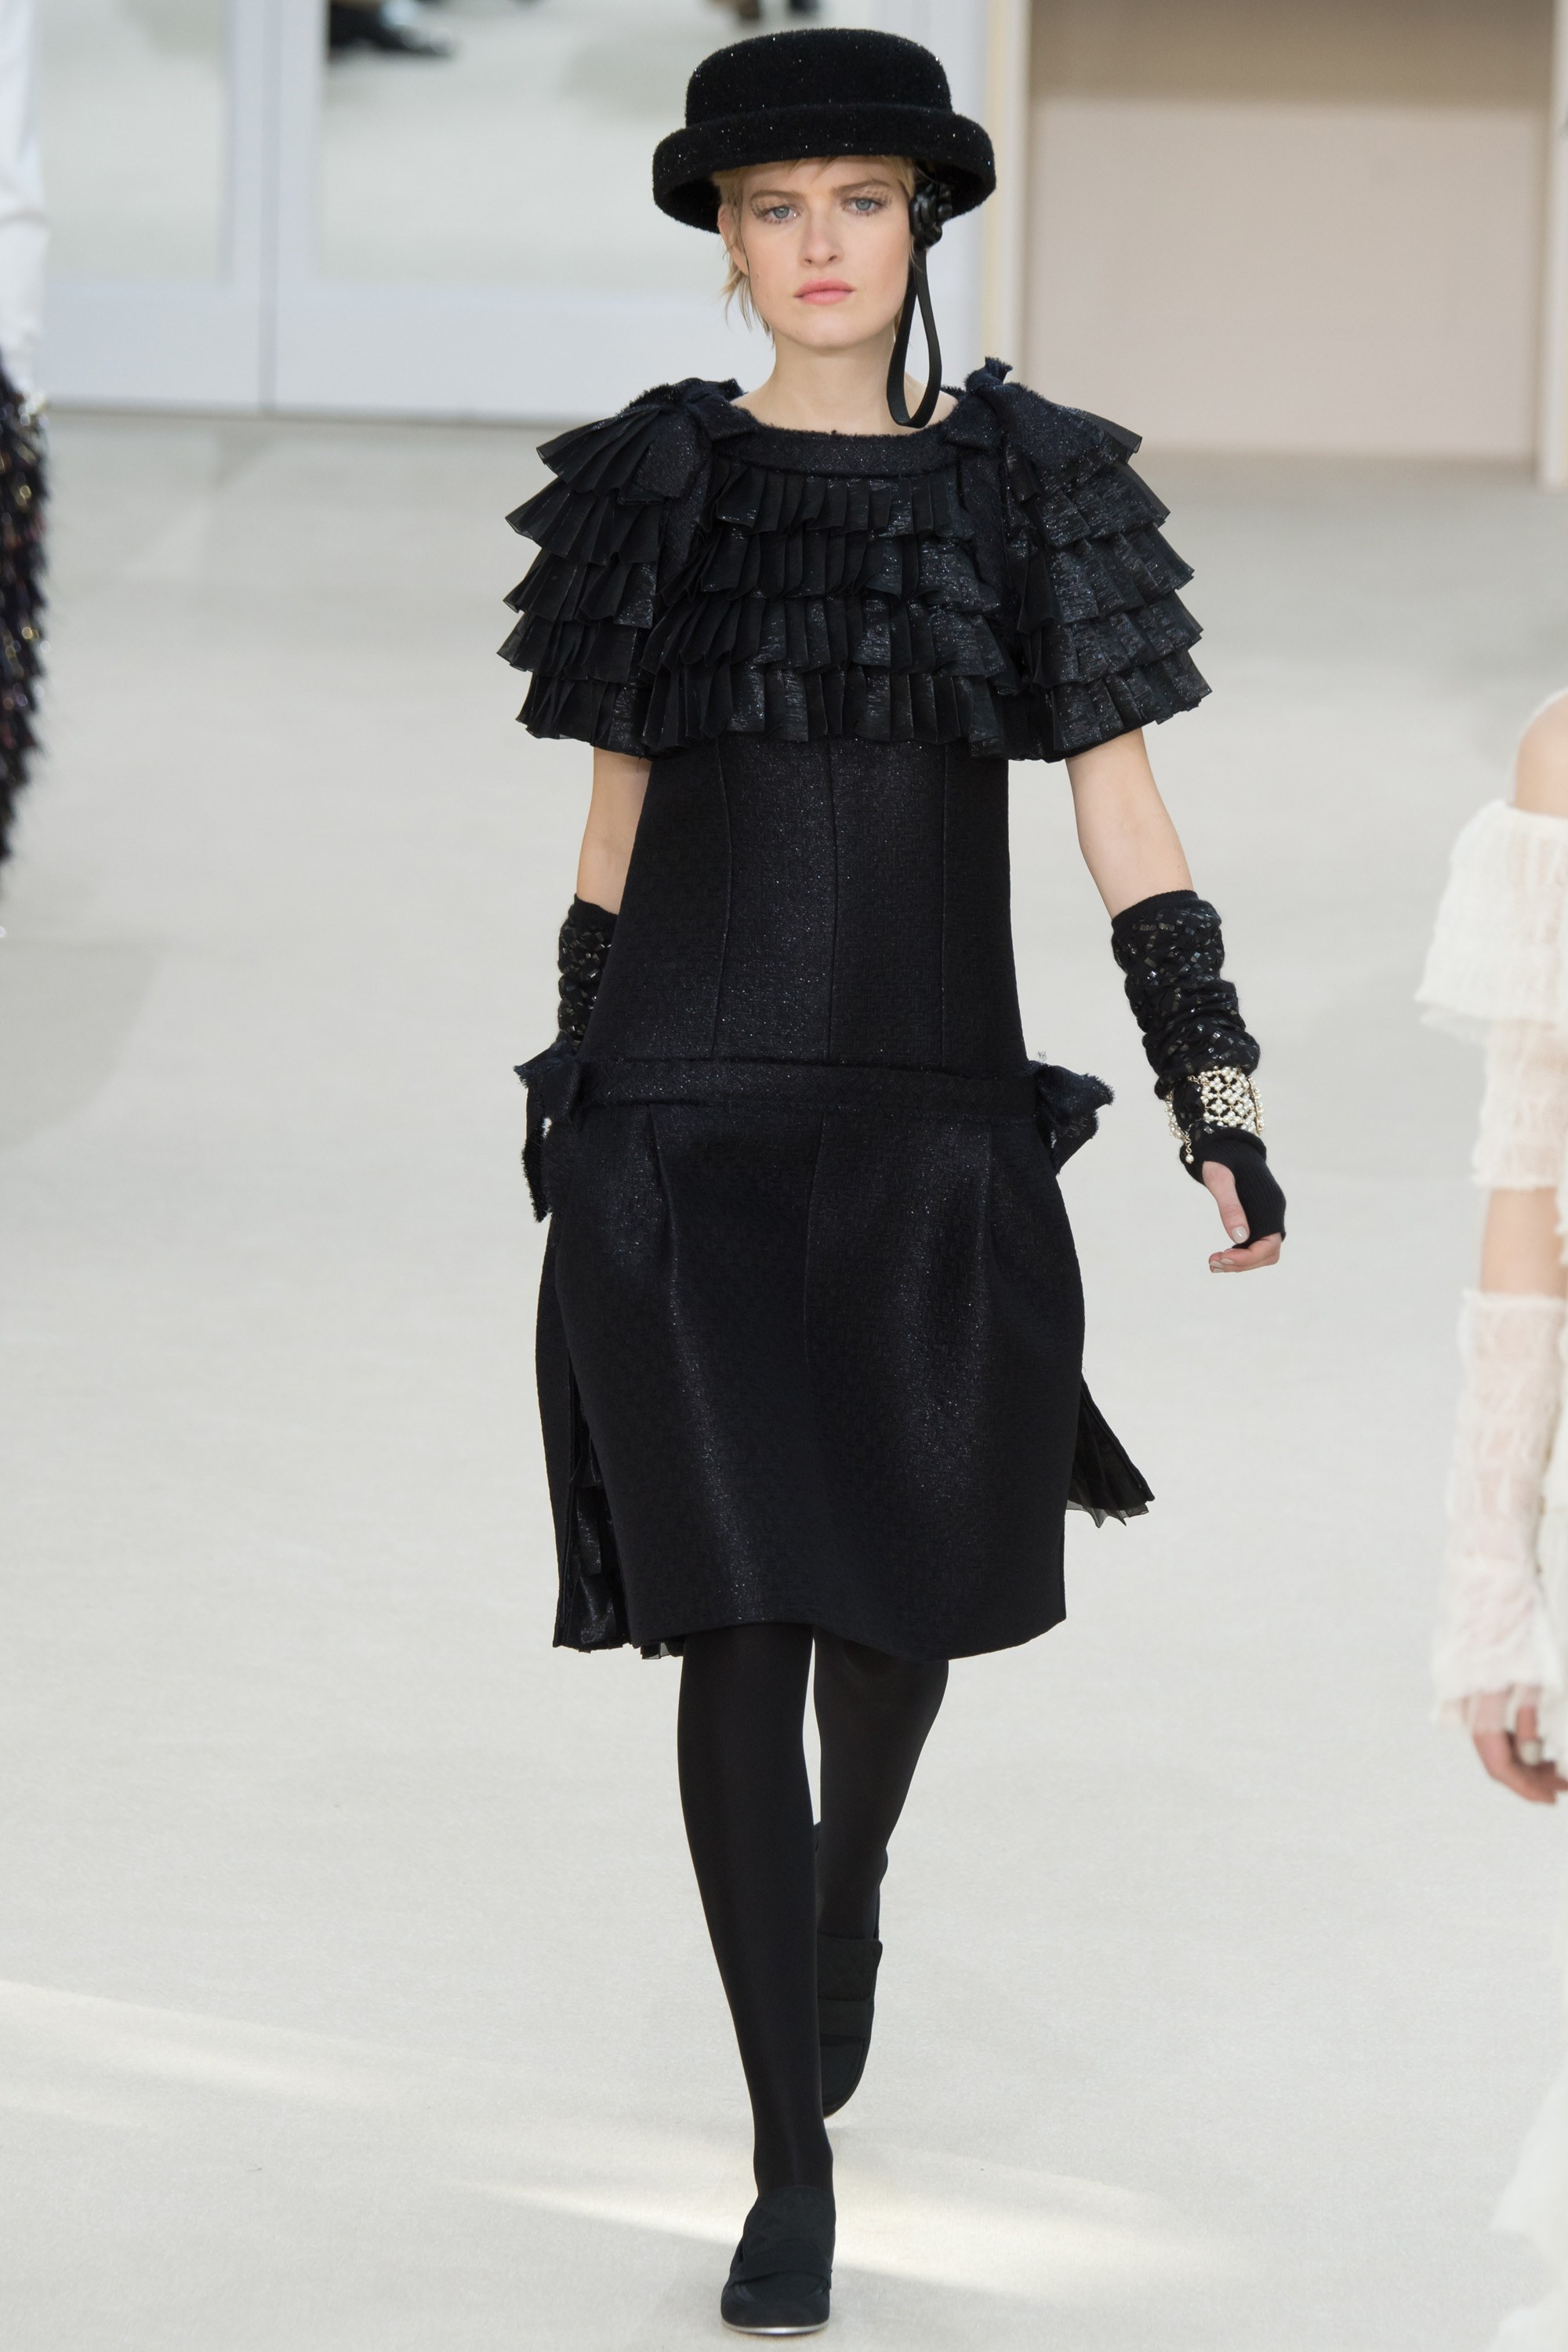 chanel-fall-2016-2017-rtw-pfw-collection